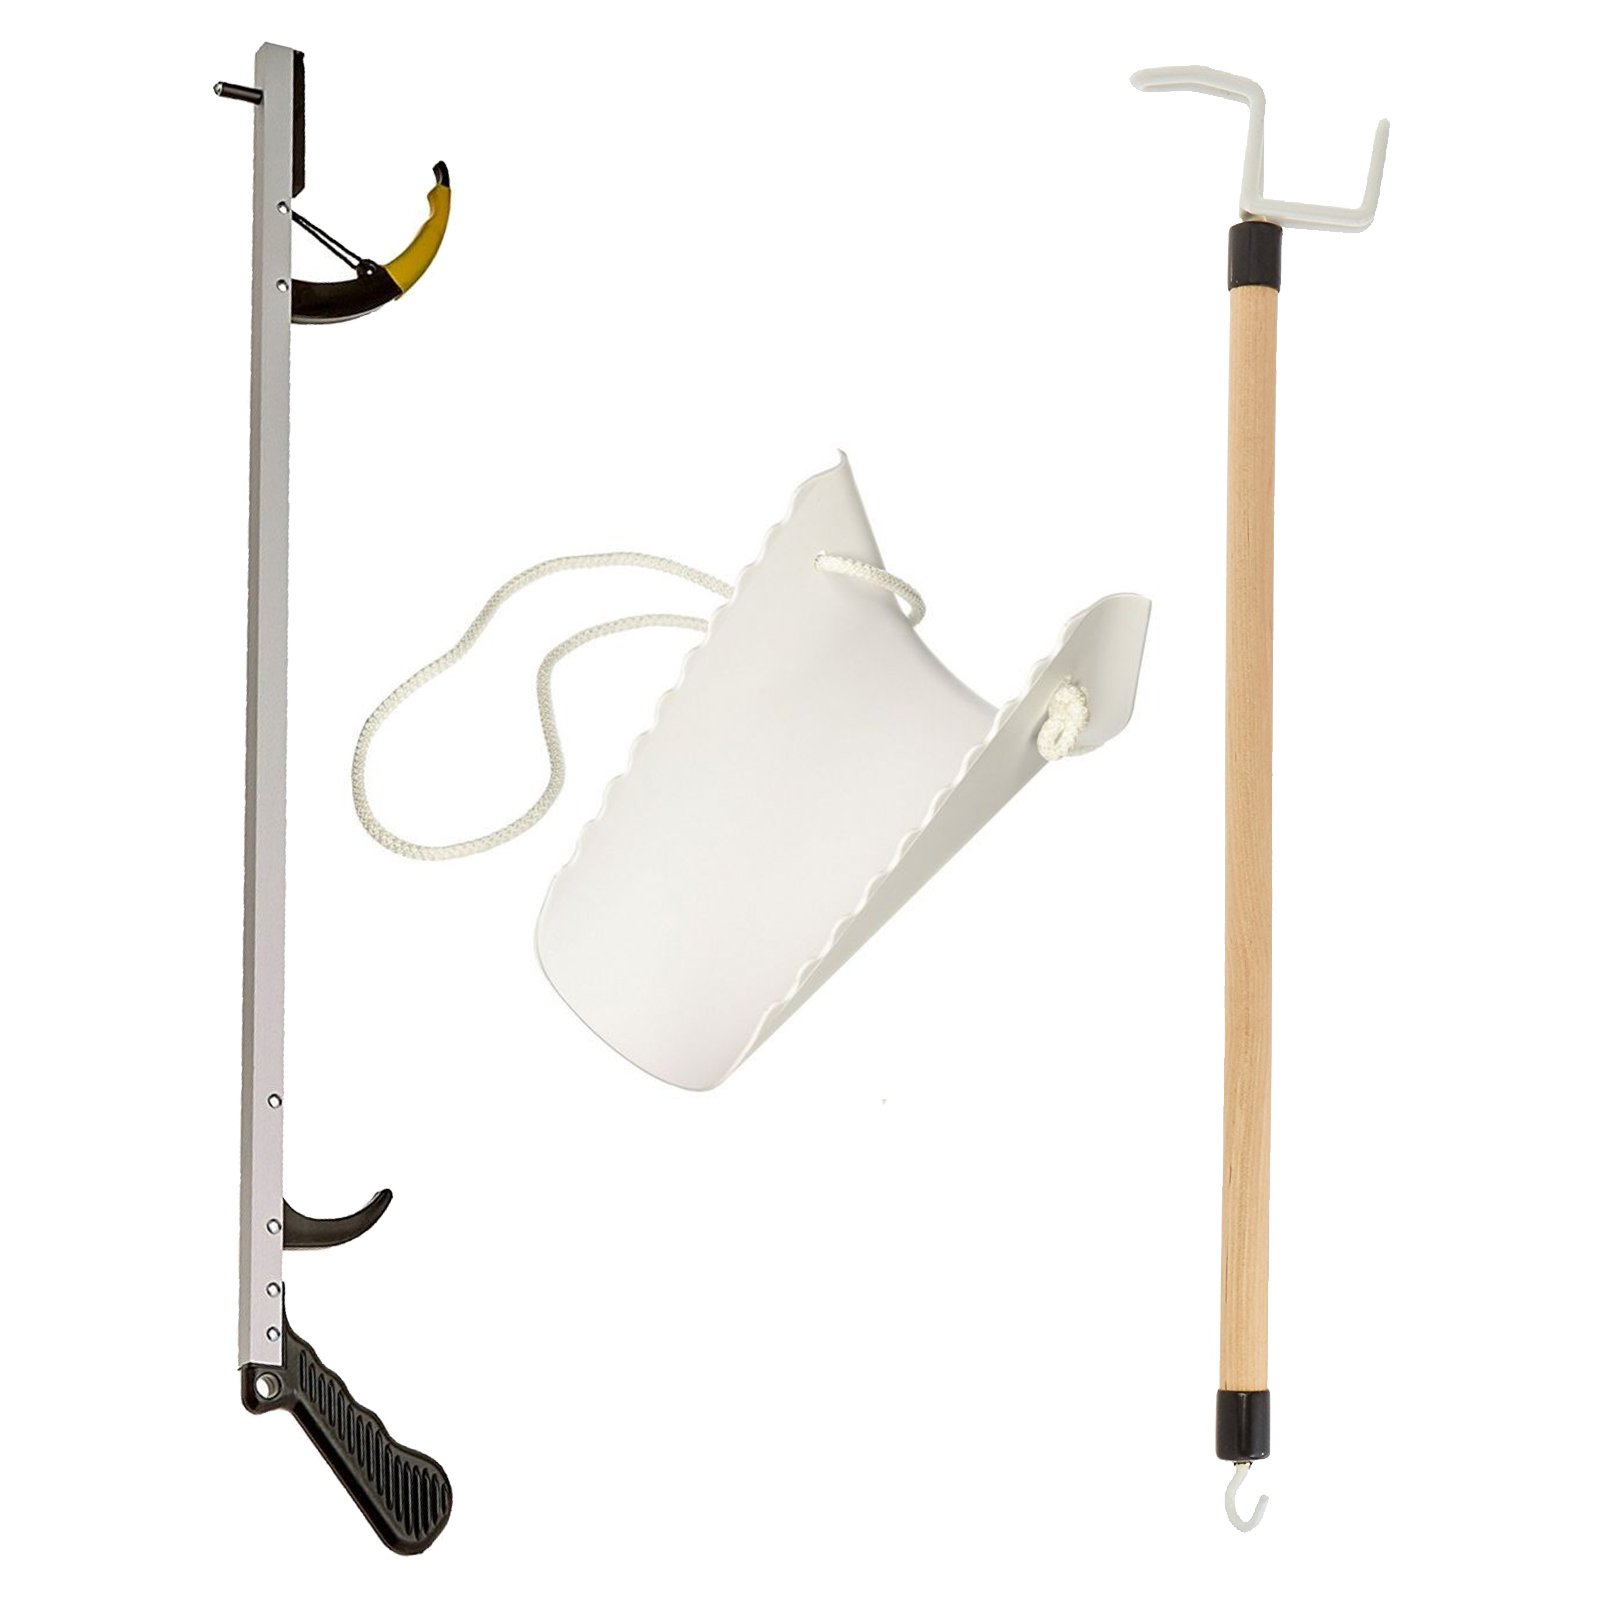 Sammons Preston Assistive Device Kit 6, Includes 26'' SPR Reacher, Compression Stocking Aid & 26'' Dressing Stick, Adaptive Independent Daily Living Aid for Those with Limited Reaching Ability by Sammons Preston